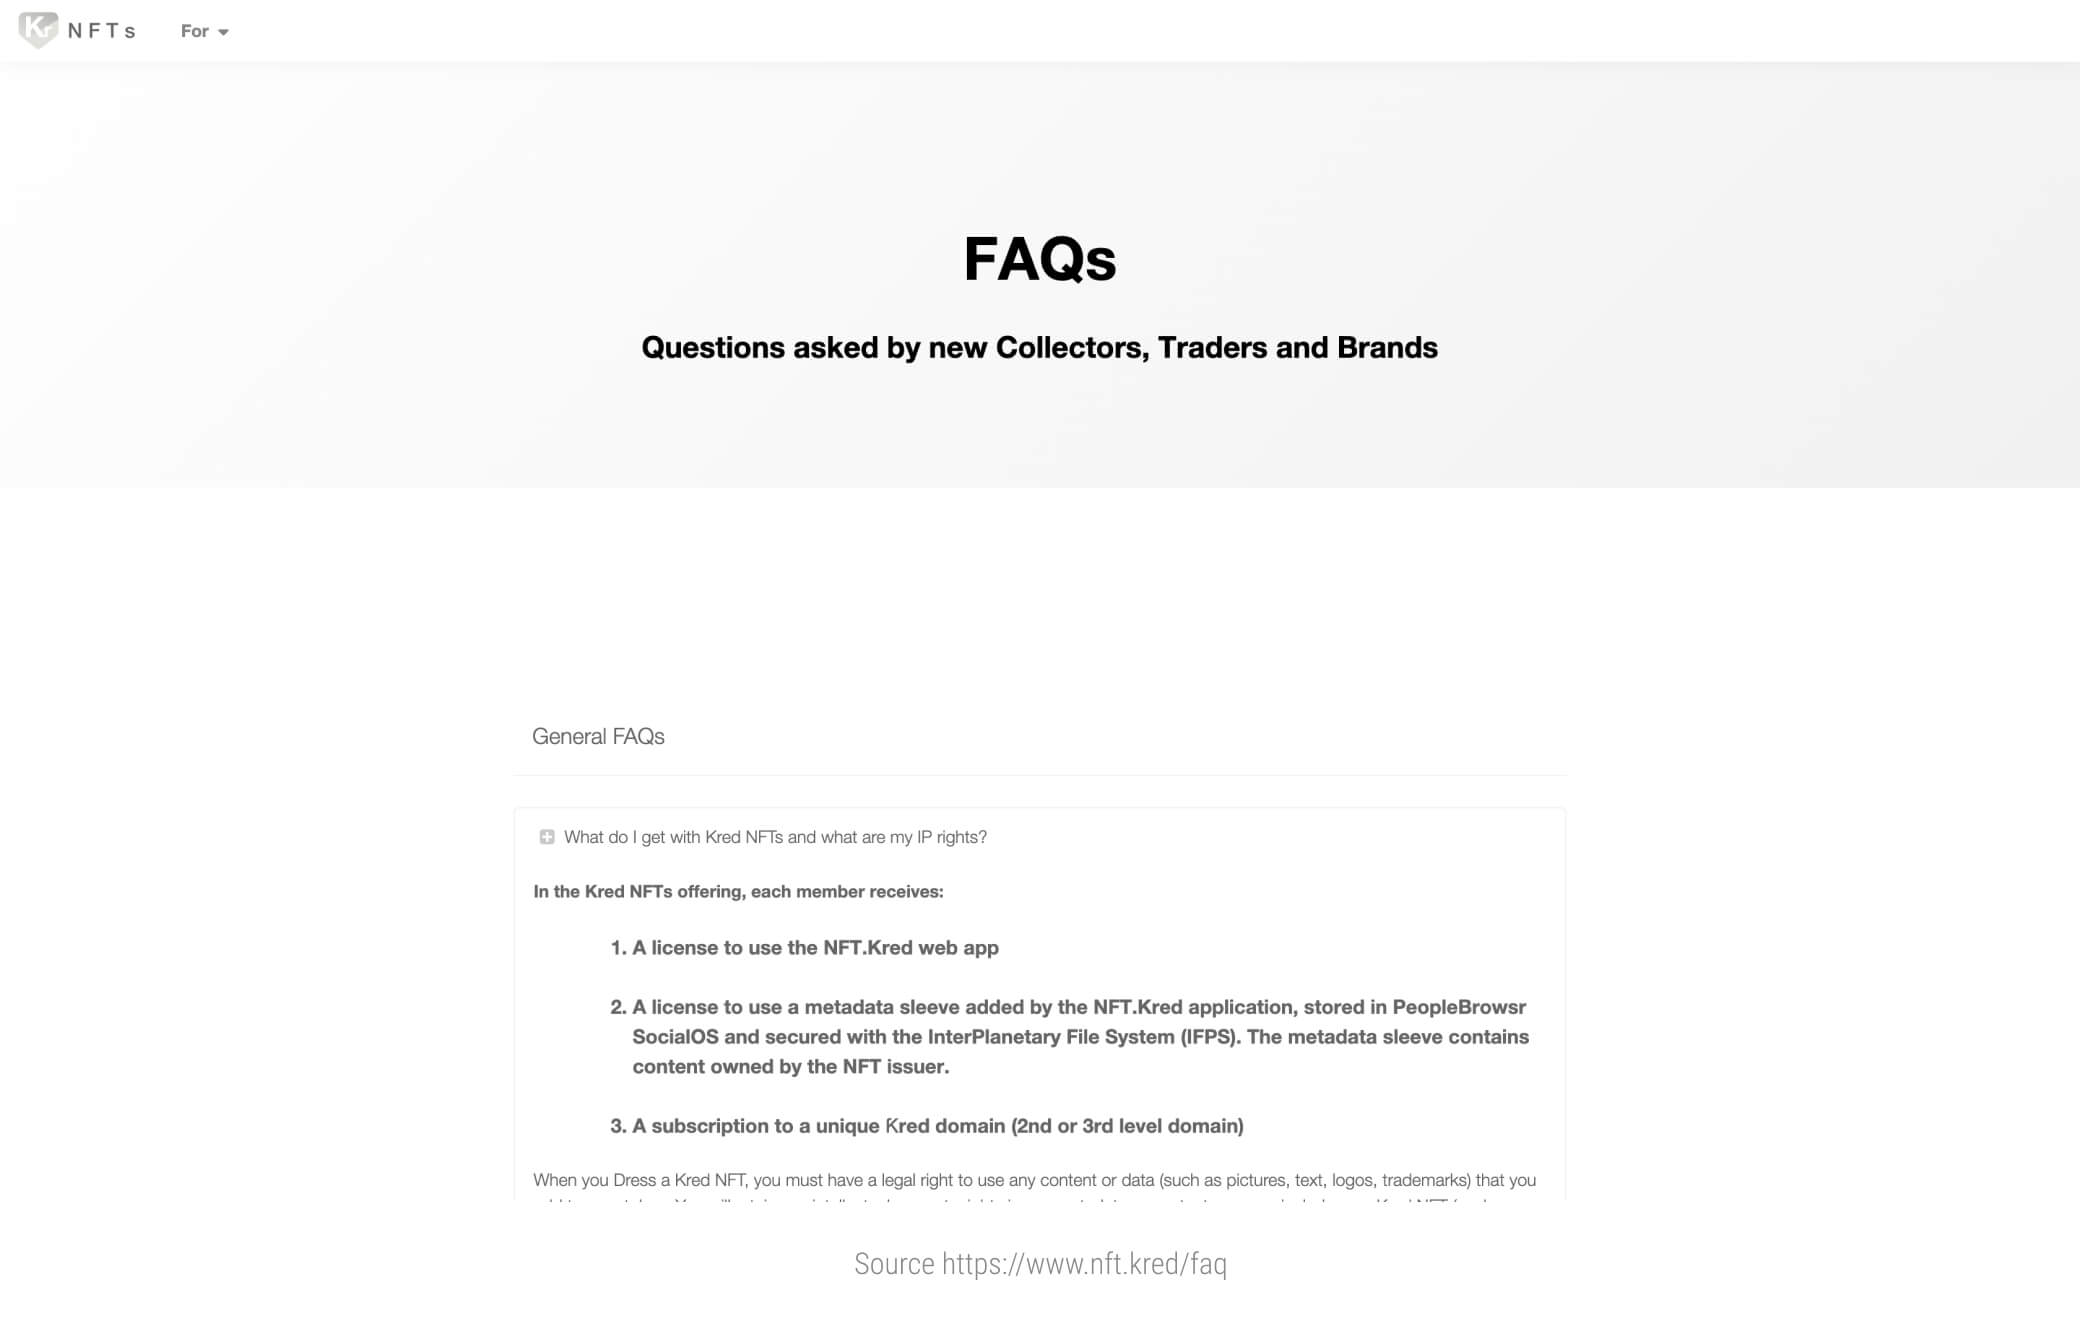 FAQs_-Questions-asked-by-new-Collectors--Traders-and-Brands